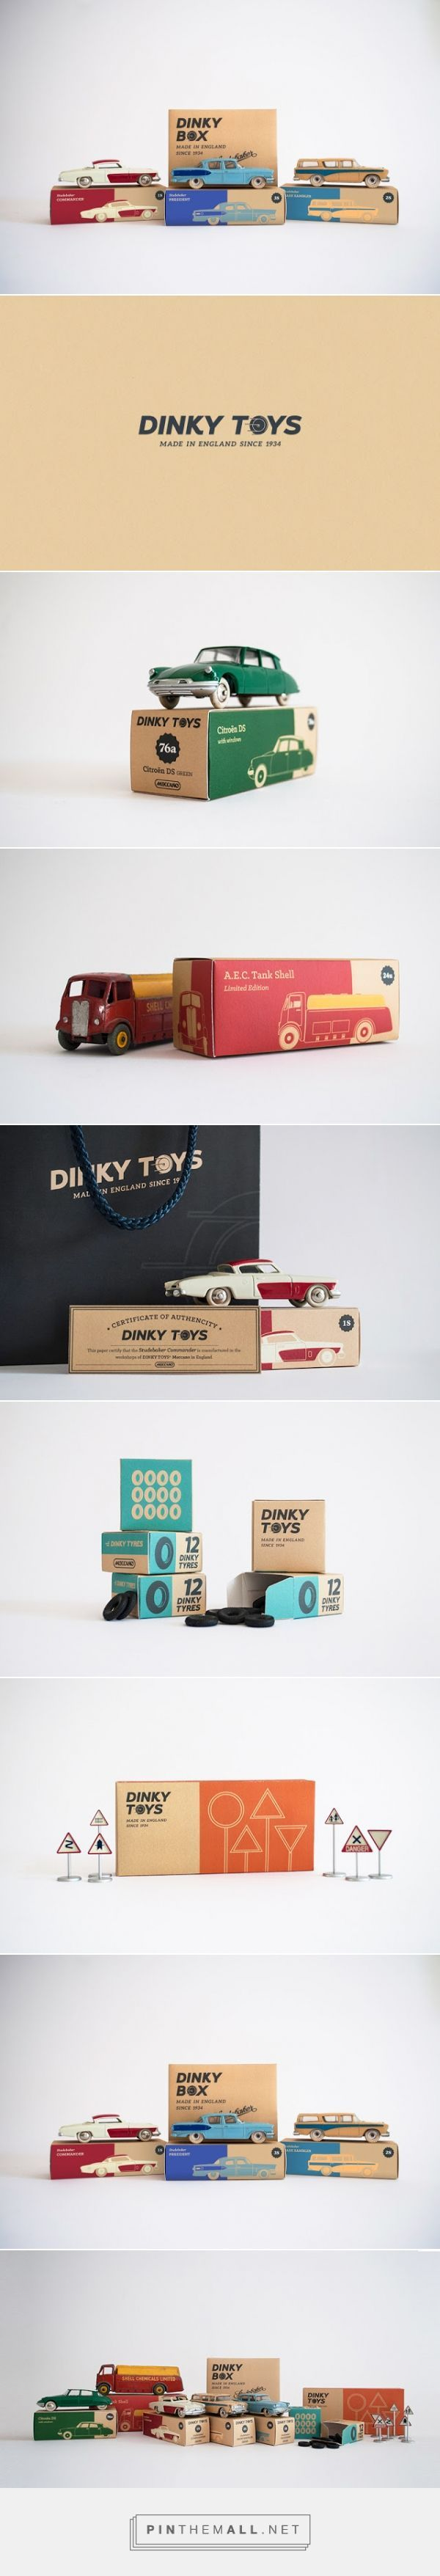 Car toys logo   best Awesome Packaging images on Pinterest  Design packaging